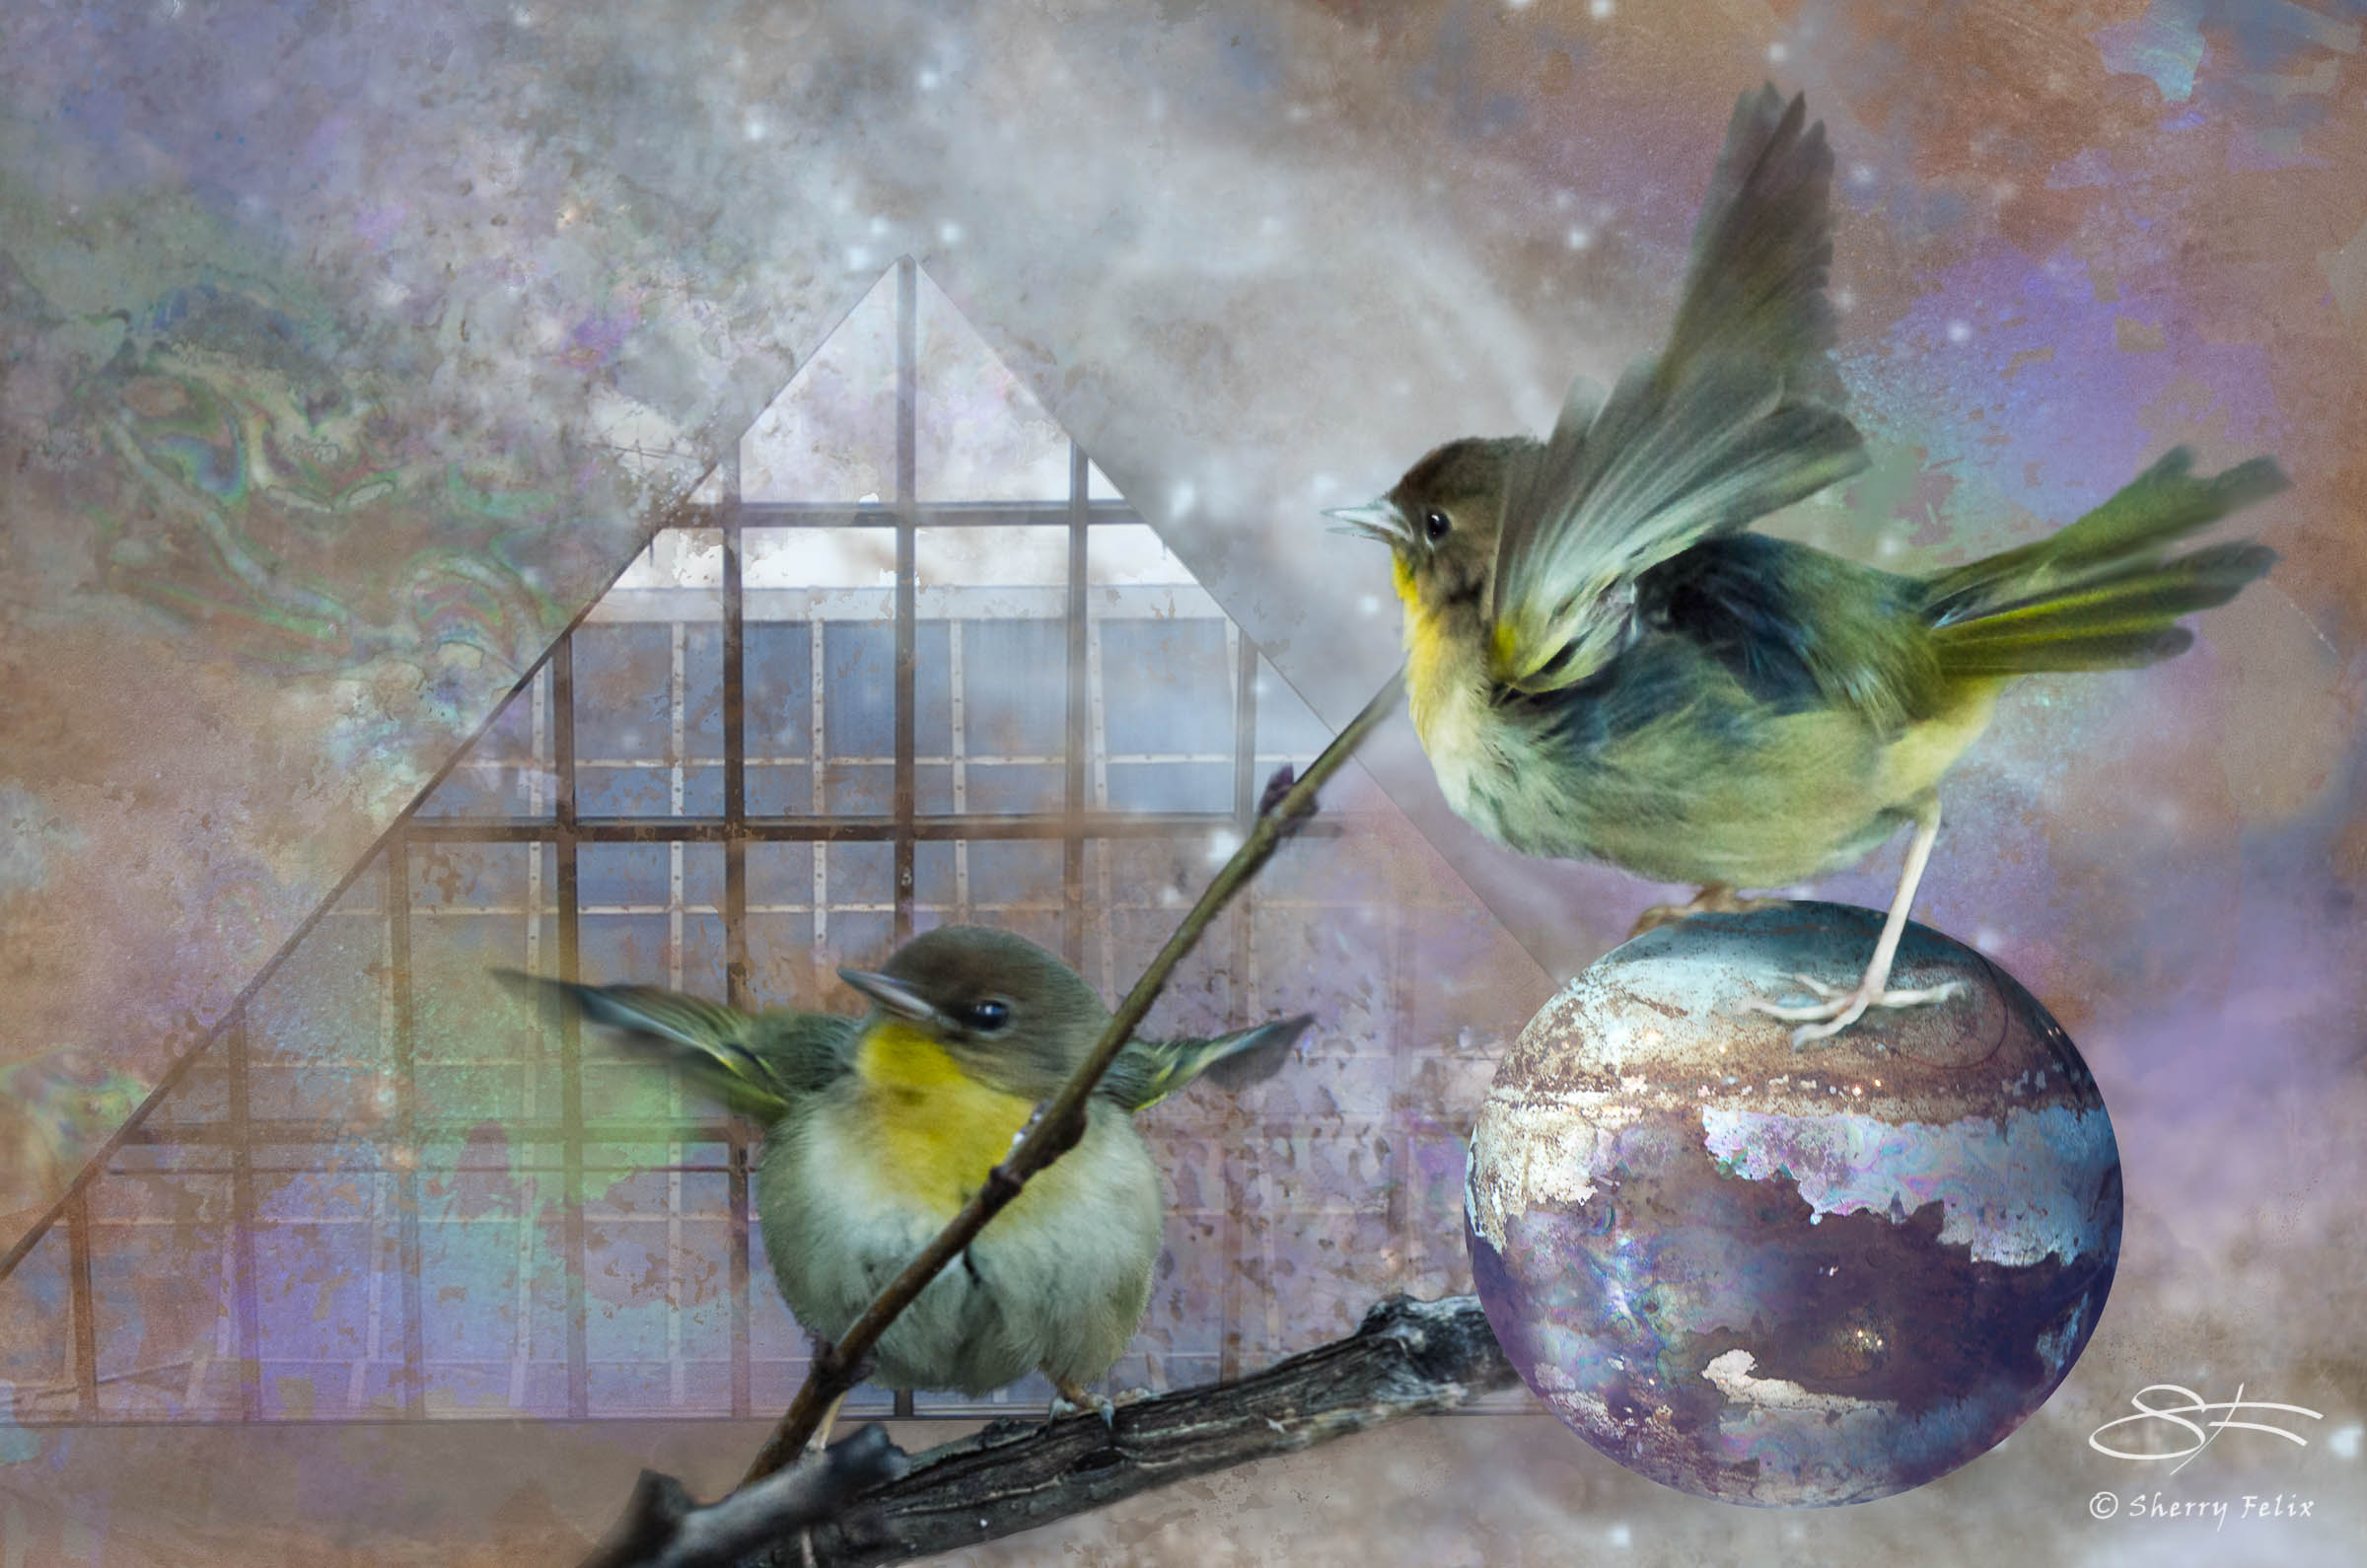 Yellowthroat in an Iridescencent Universe 1/24/2014